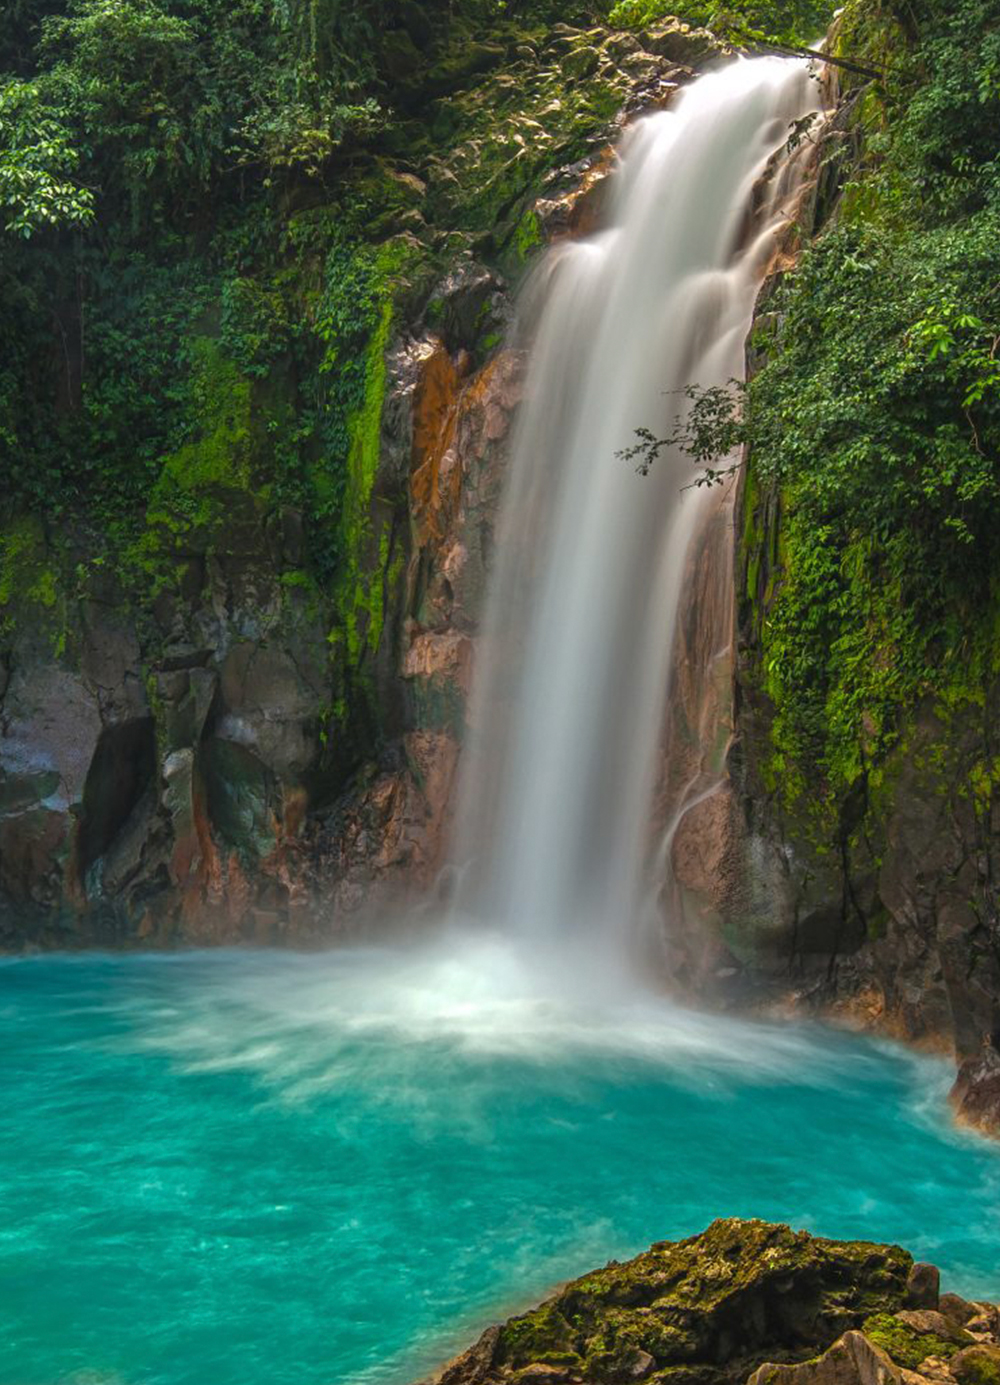 A solo trip to Costa Rica - Sarah has never left the U.S. and was hesitant about traveling solo. She wanted help outside of a guidebook to make her time and her experience as awesome as possible.